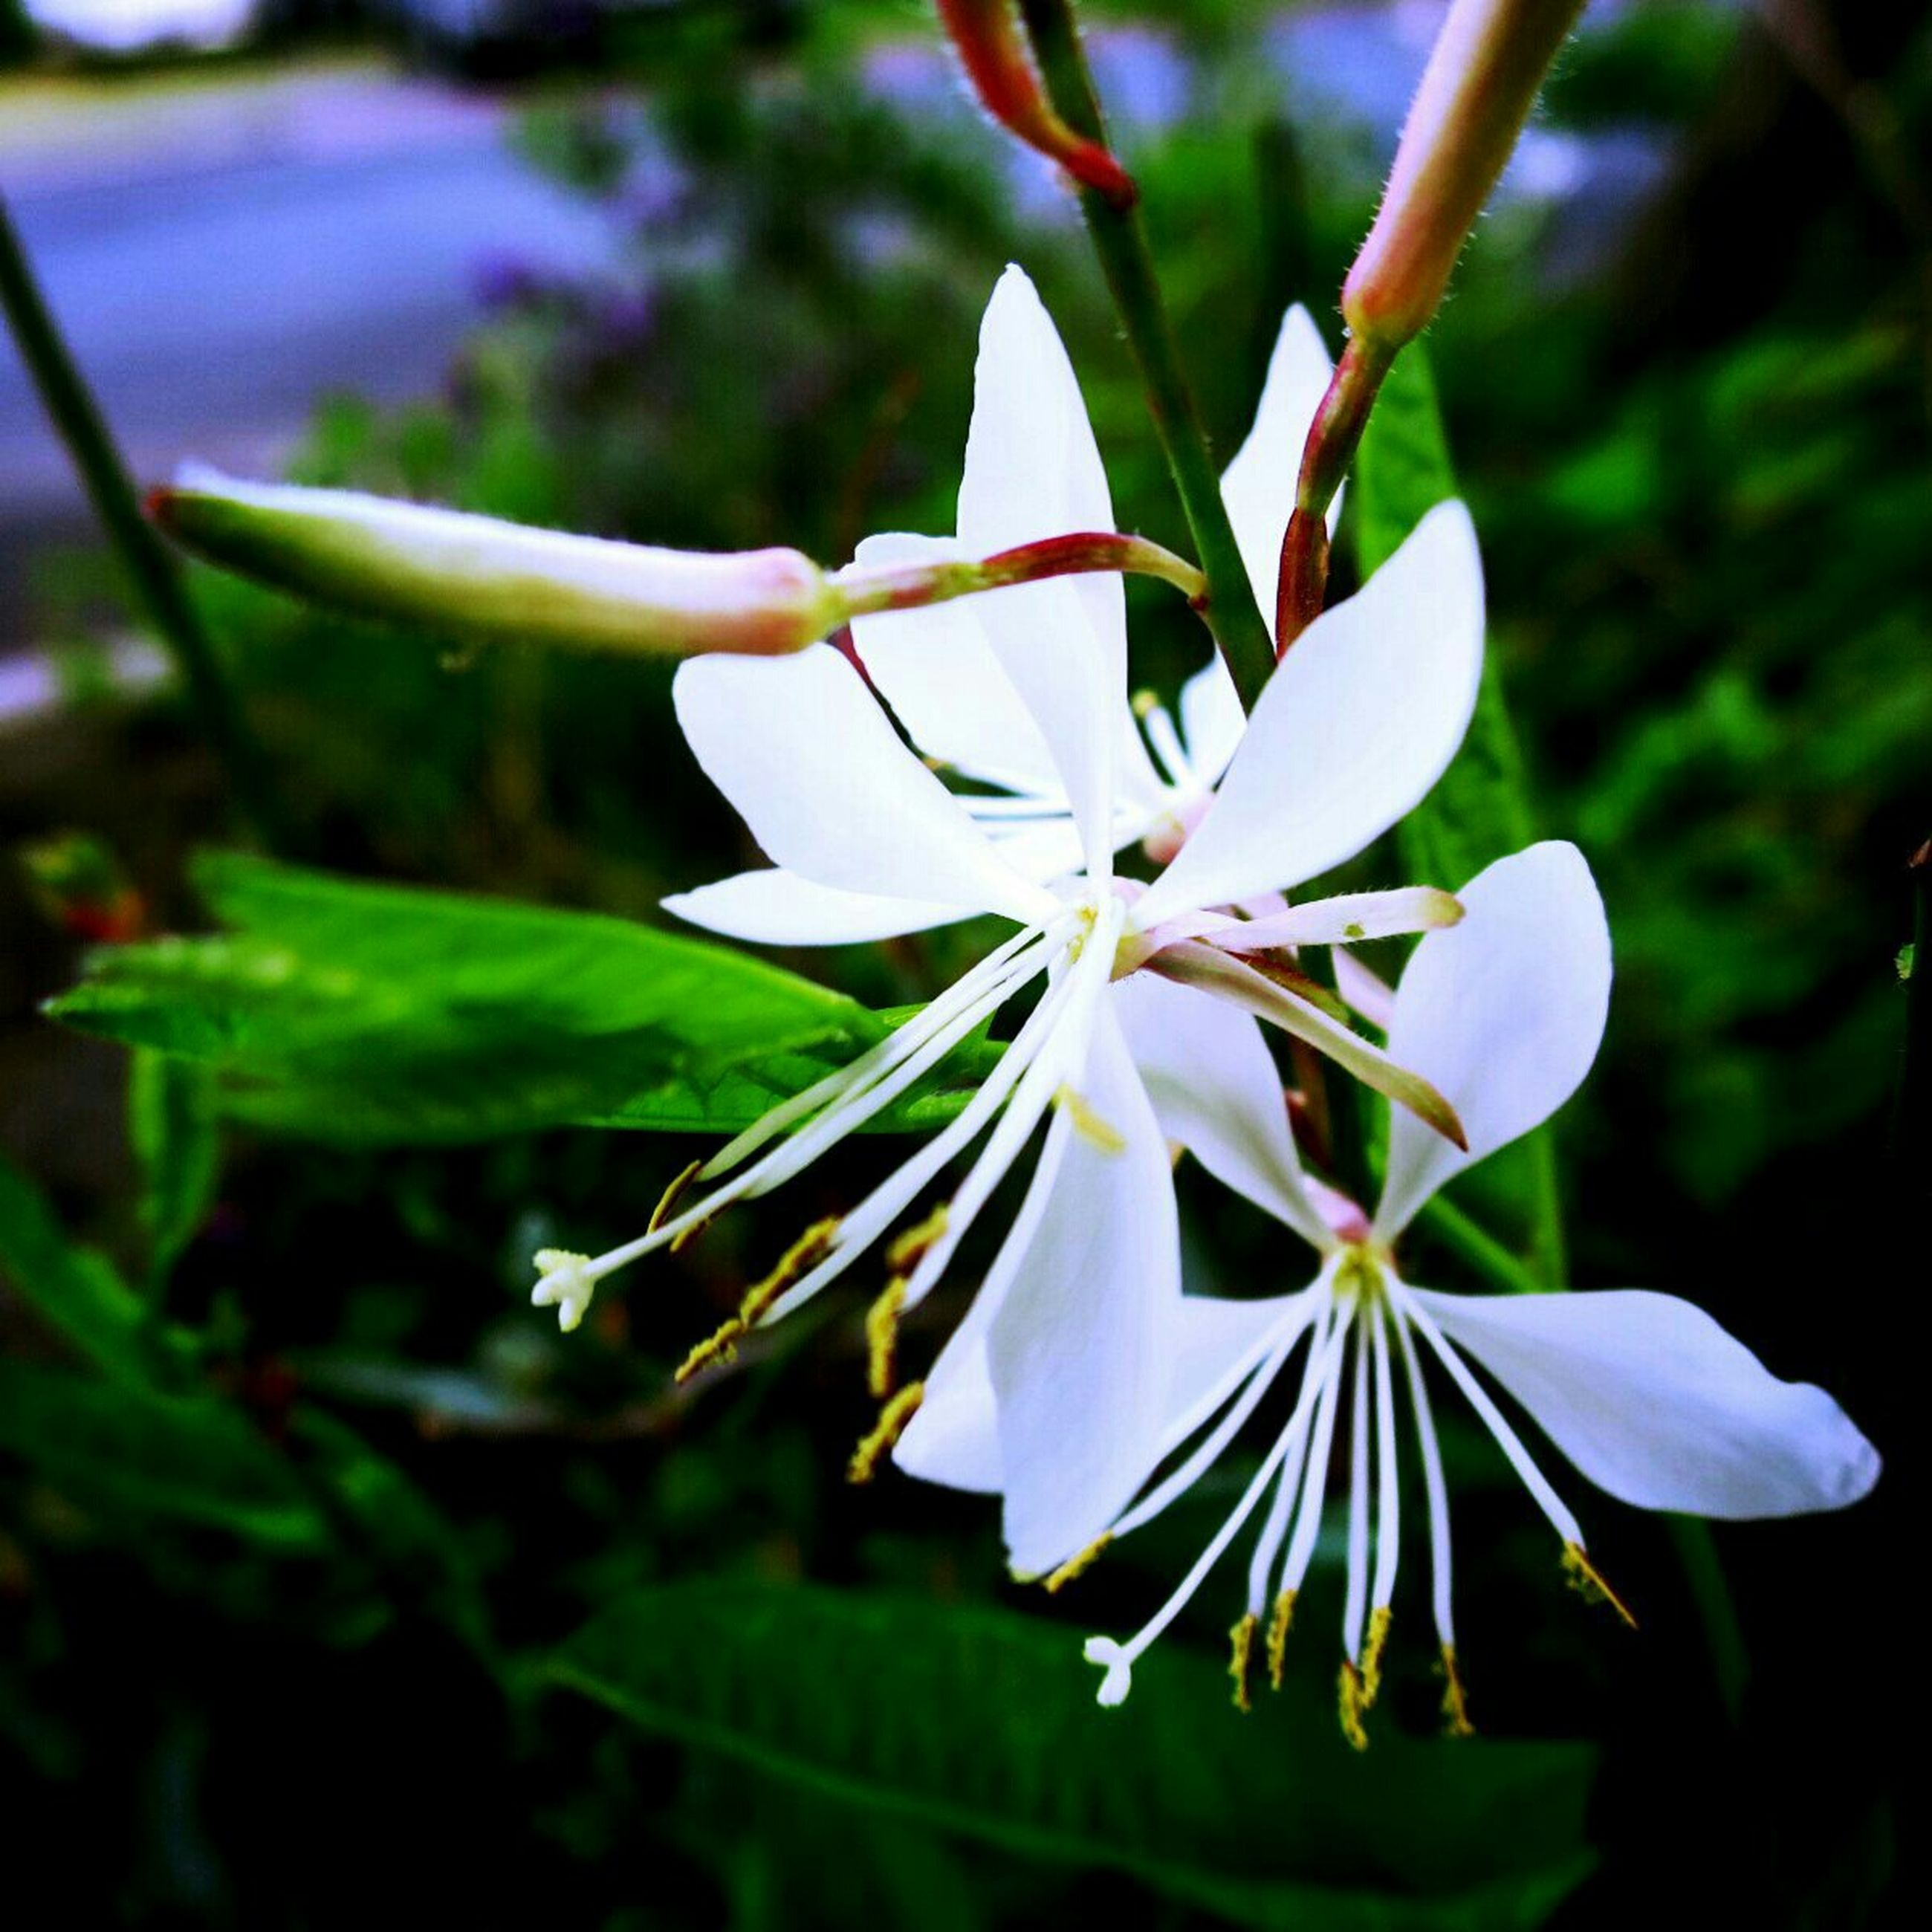 flower, petal, freshness, fragility, flower head, white color, growth, beauty in nature, focus on foreground, close-up, blooming, pollen, stamen, nature, in bloom, single flower, plant, blossom, park - man made space, leaf